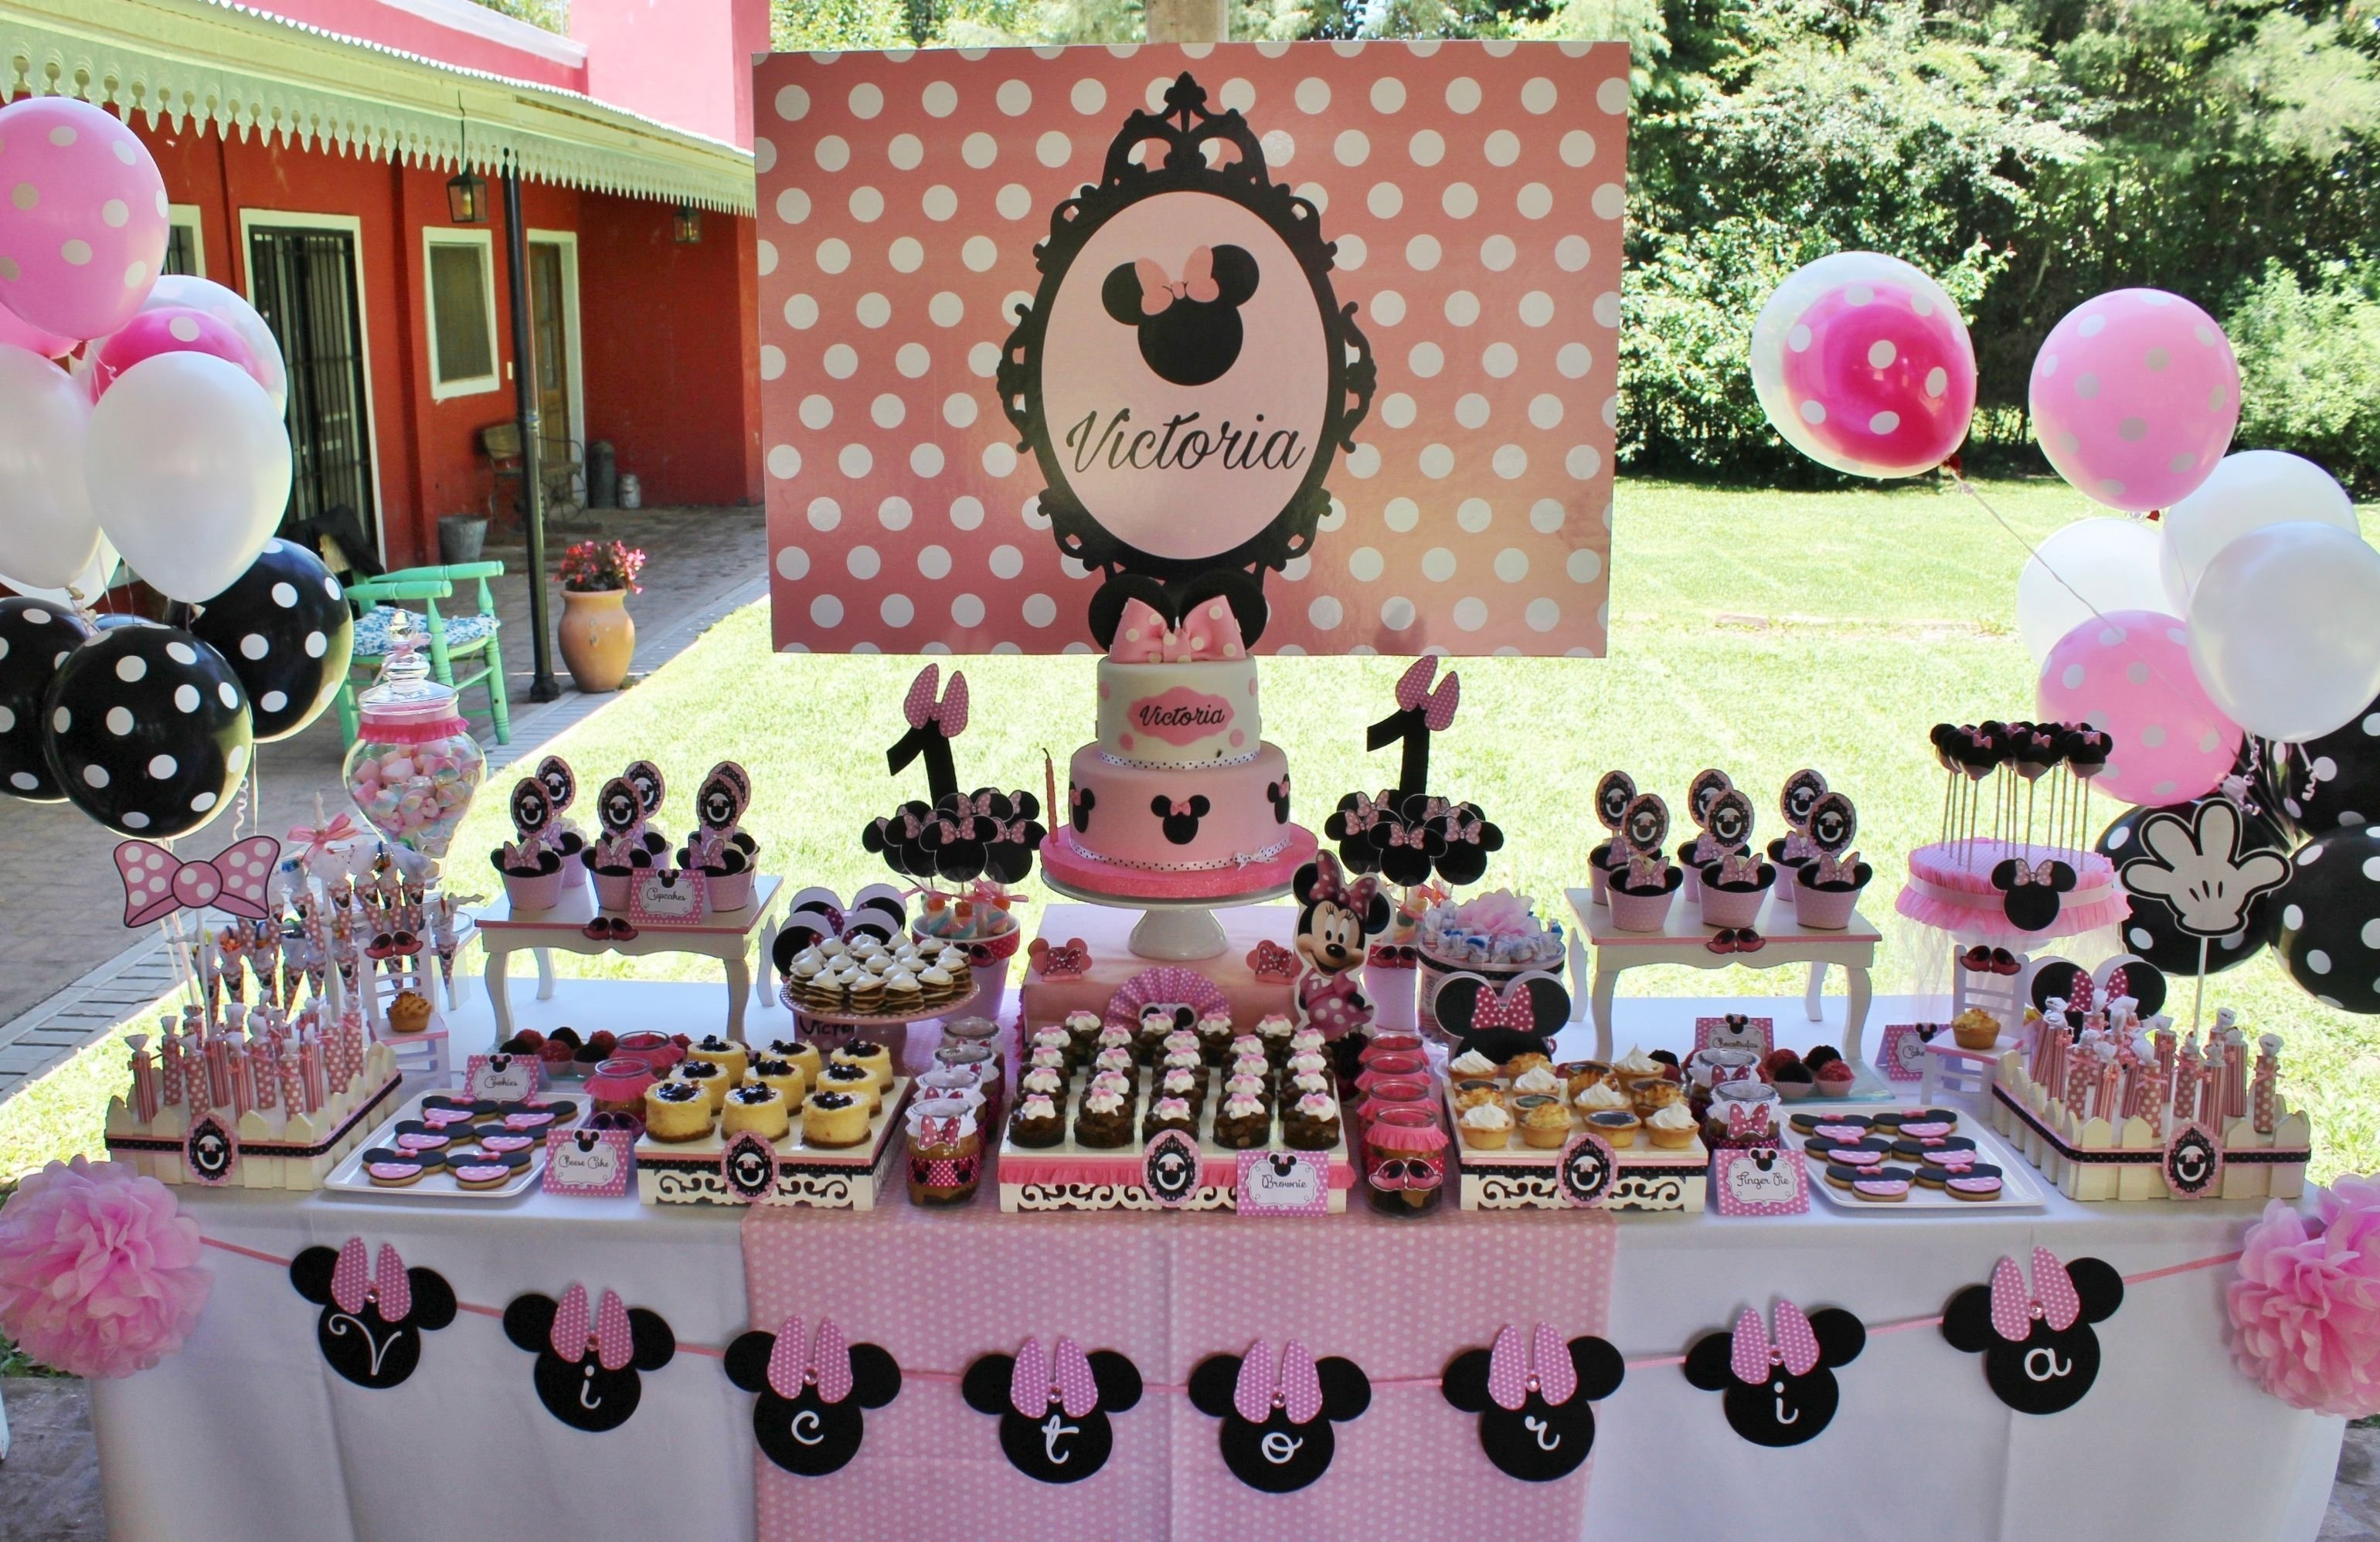 10 Wonderful Minnie Mouse Candy Bar Ideas minnie mouse in rose candy bar violeta glace dessert table 2021